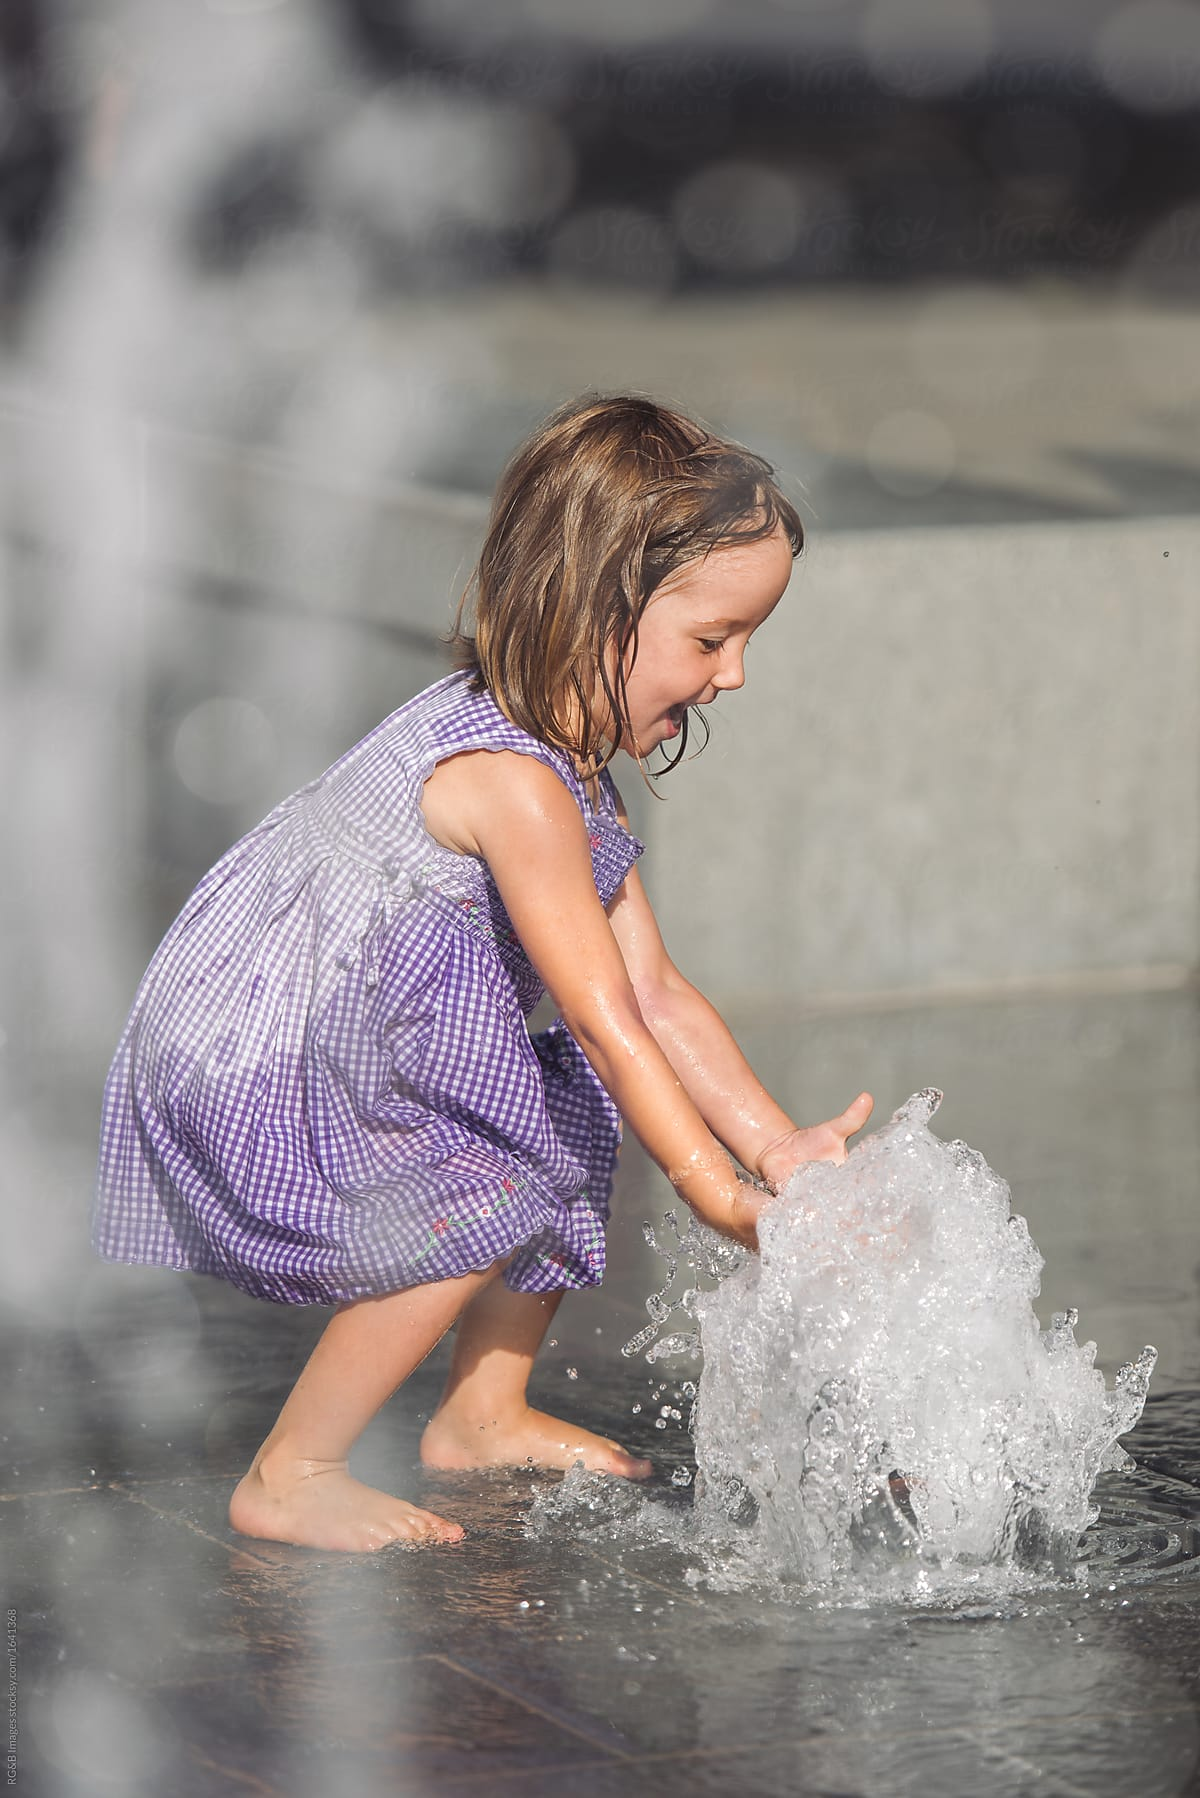 Portrait Of Wet Little Girl Playing At The Fountain